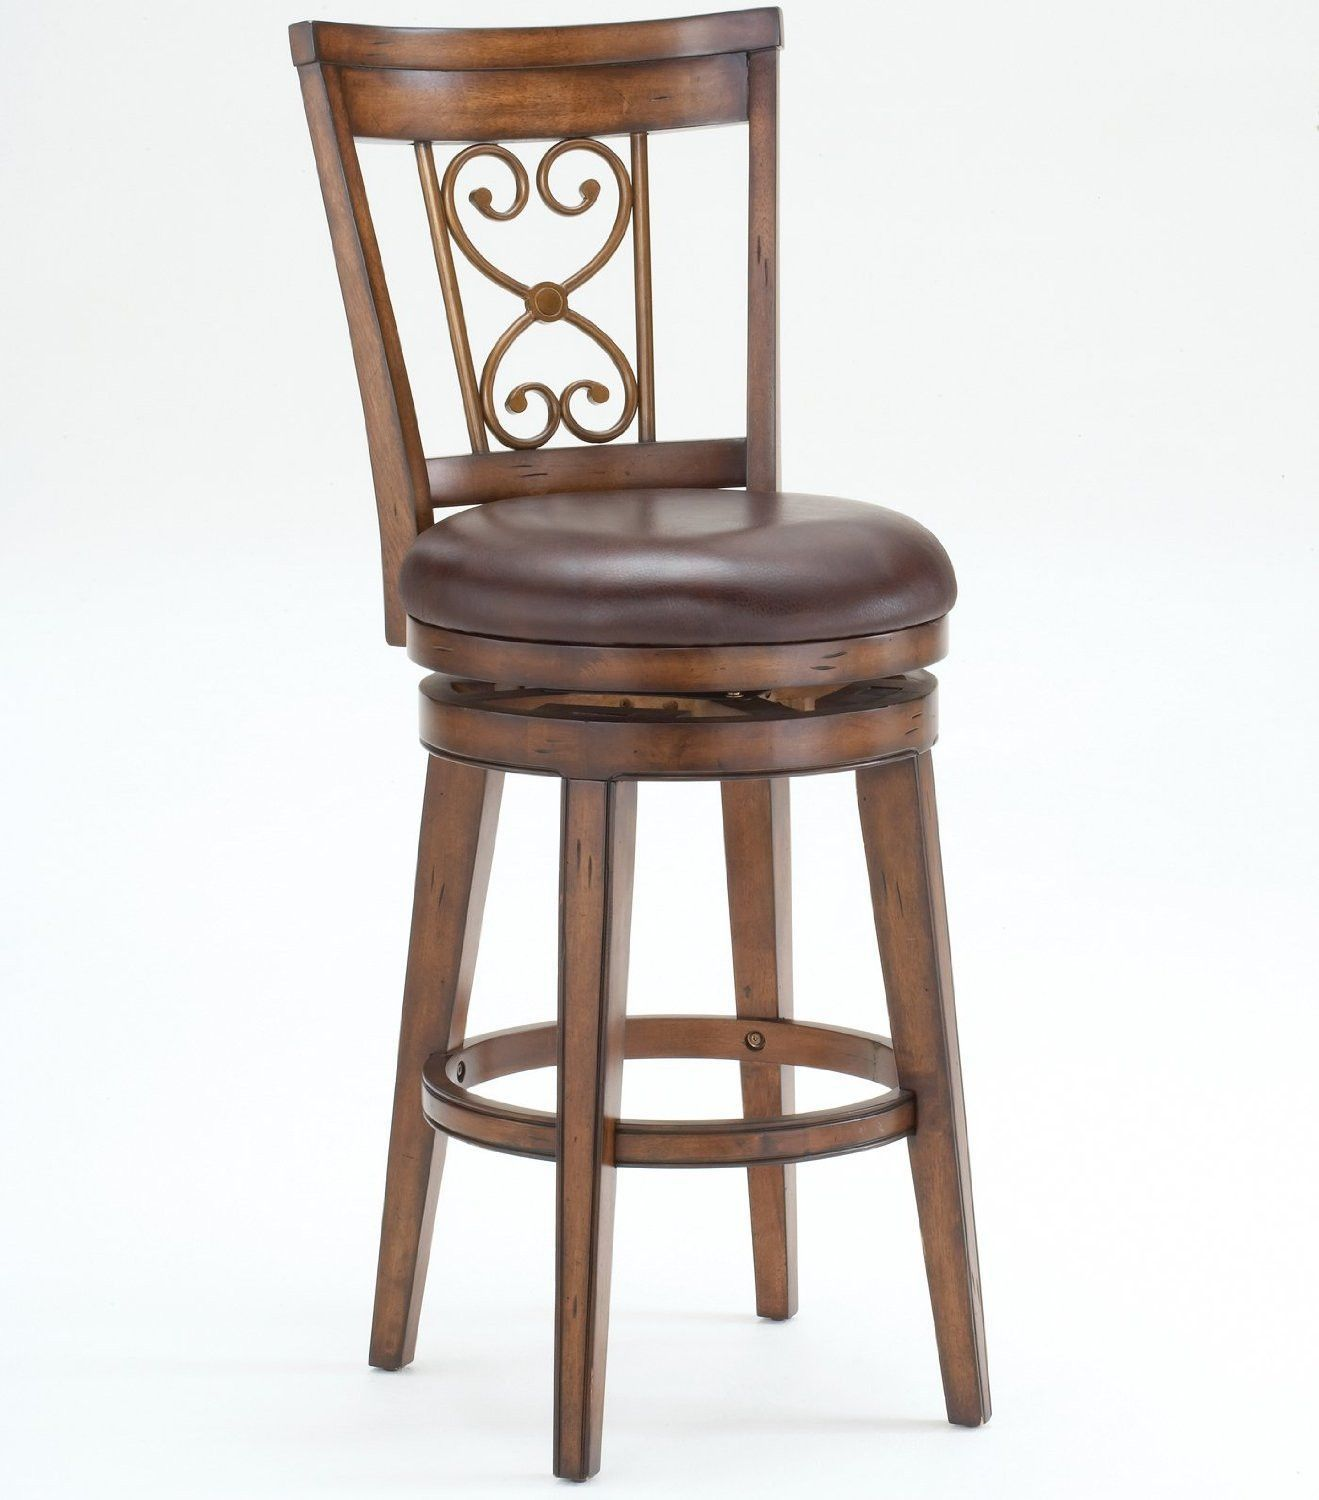 Hillsdale Furniture 4685 830S Villagio Swivel Bar Stool Scroll